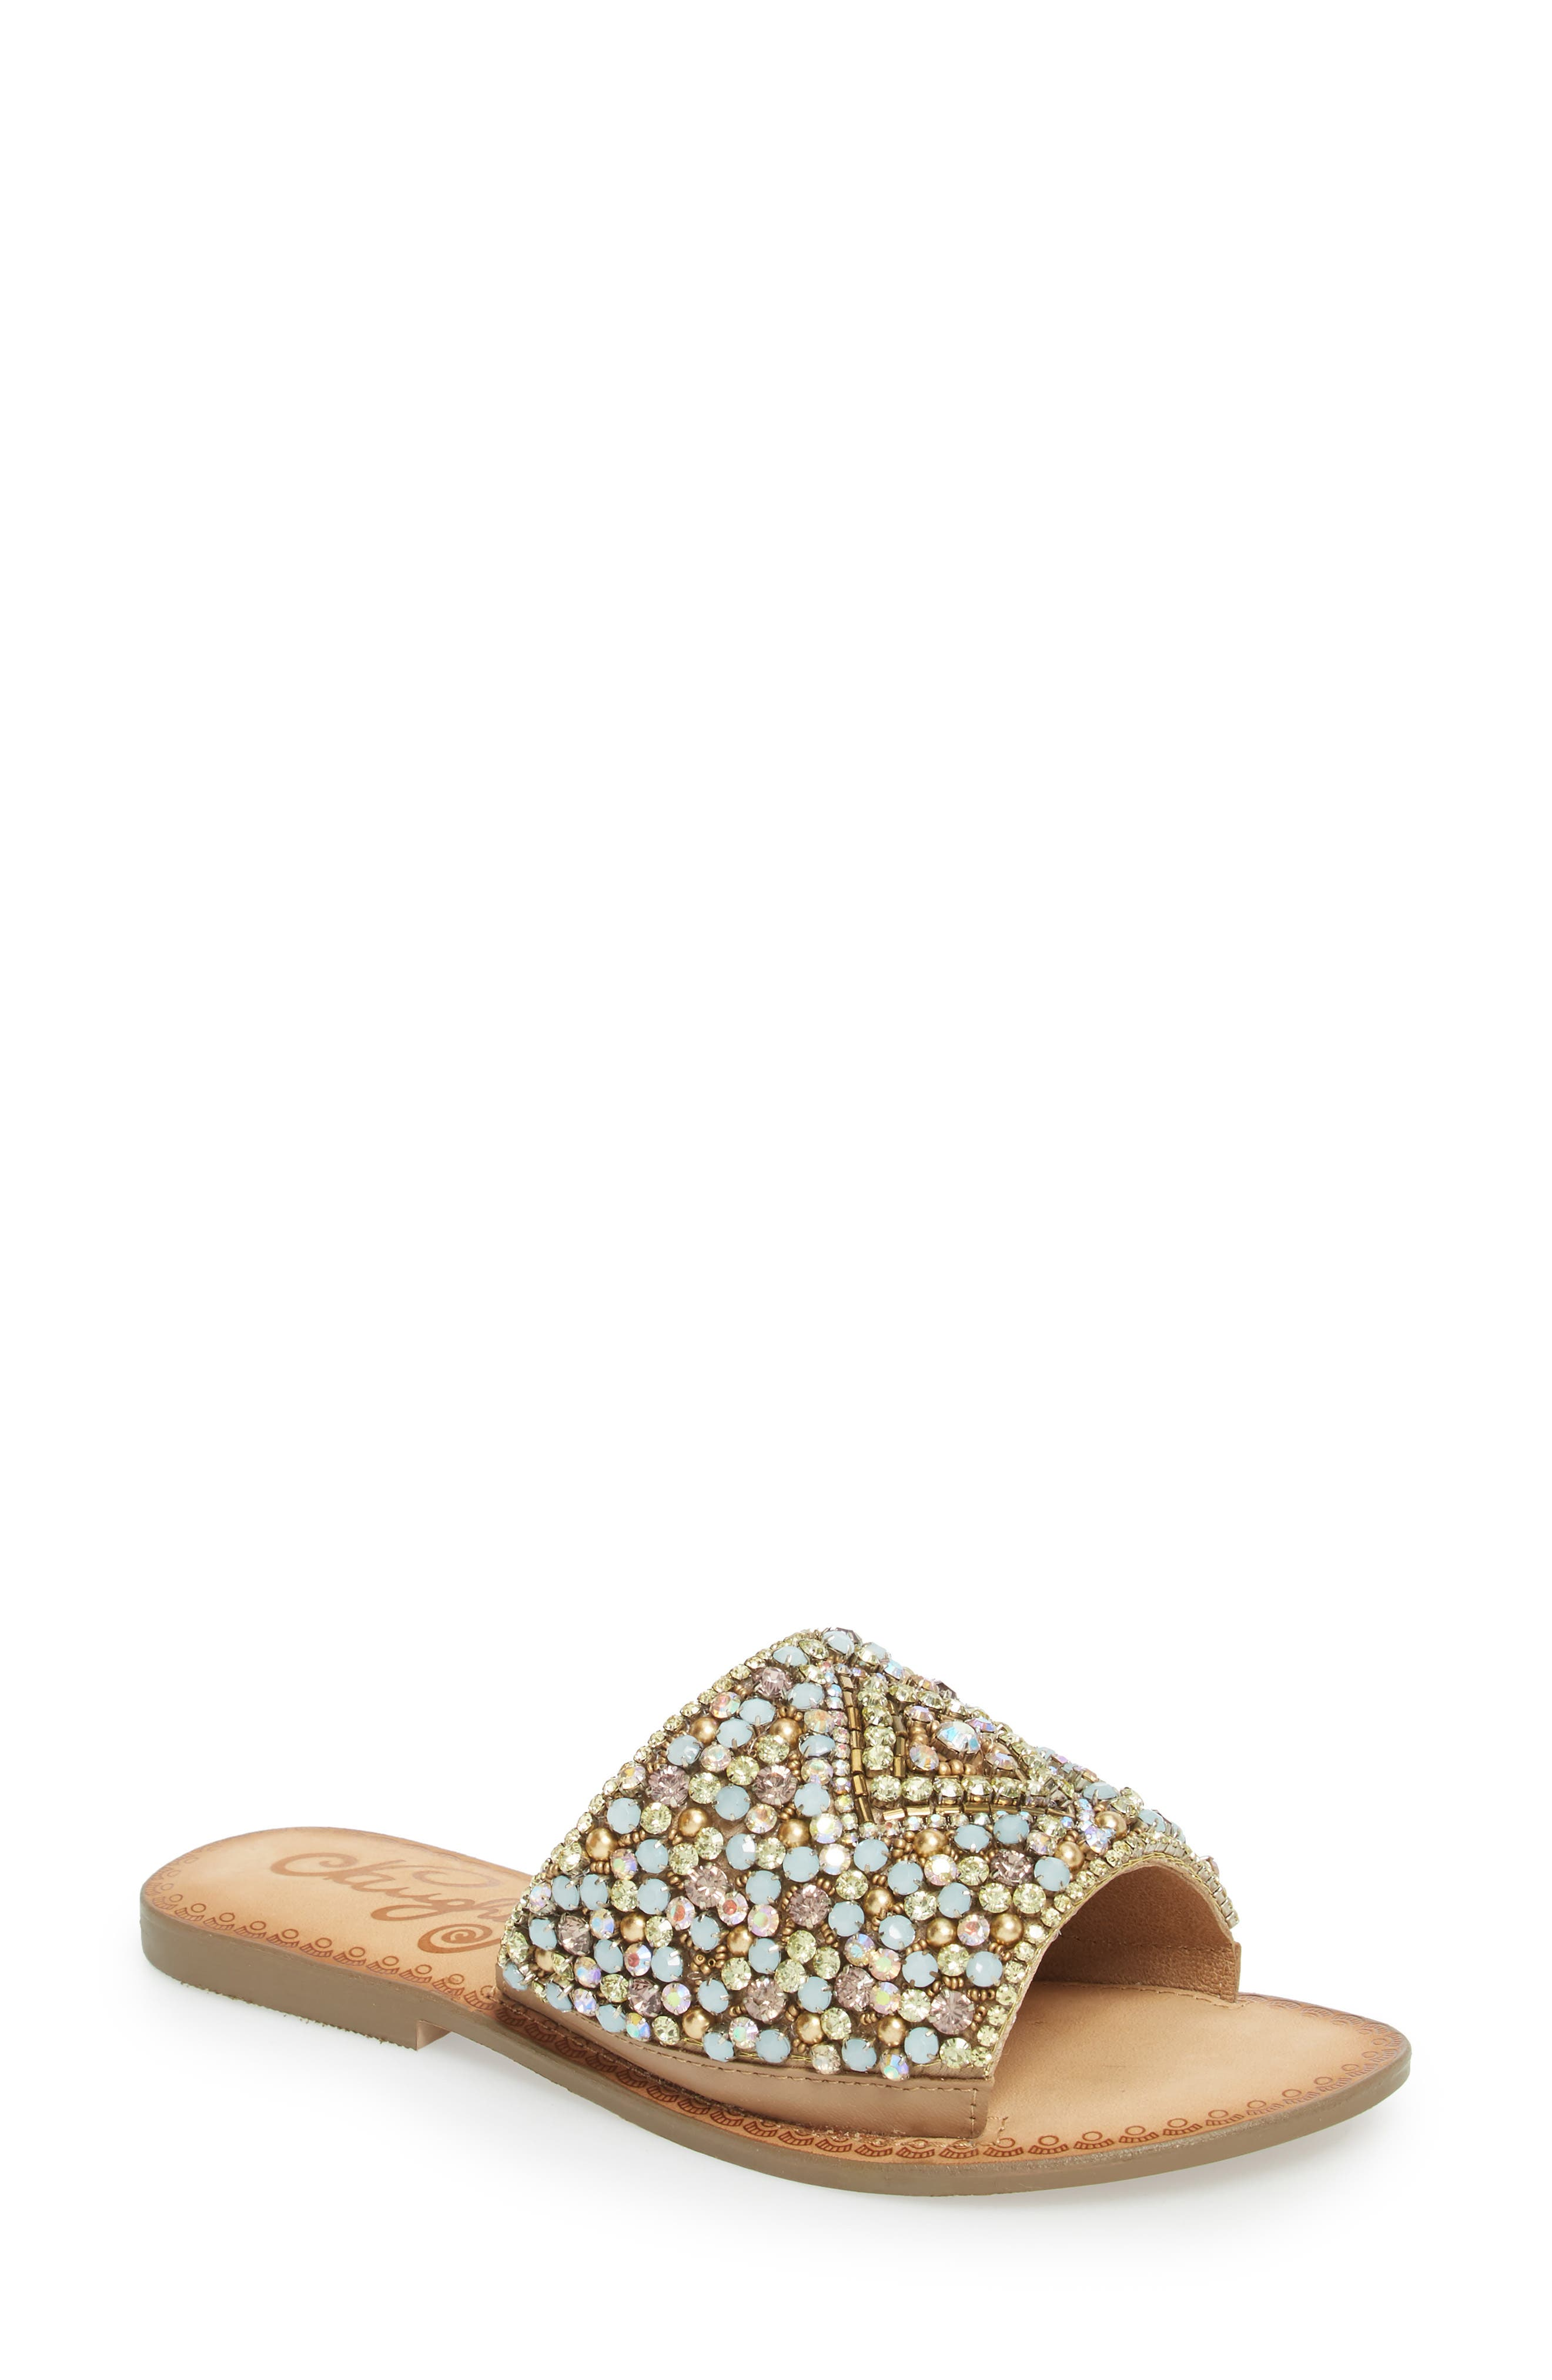 Susanna Embellished Slide Sandal,                         Main,                         color, 040